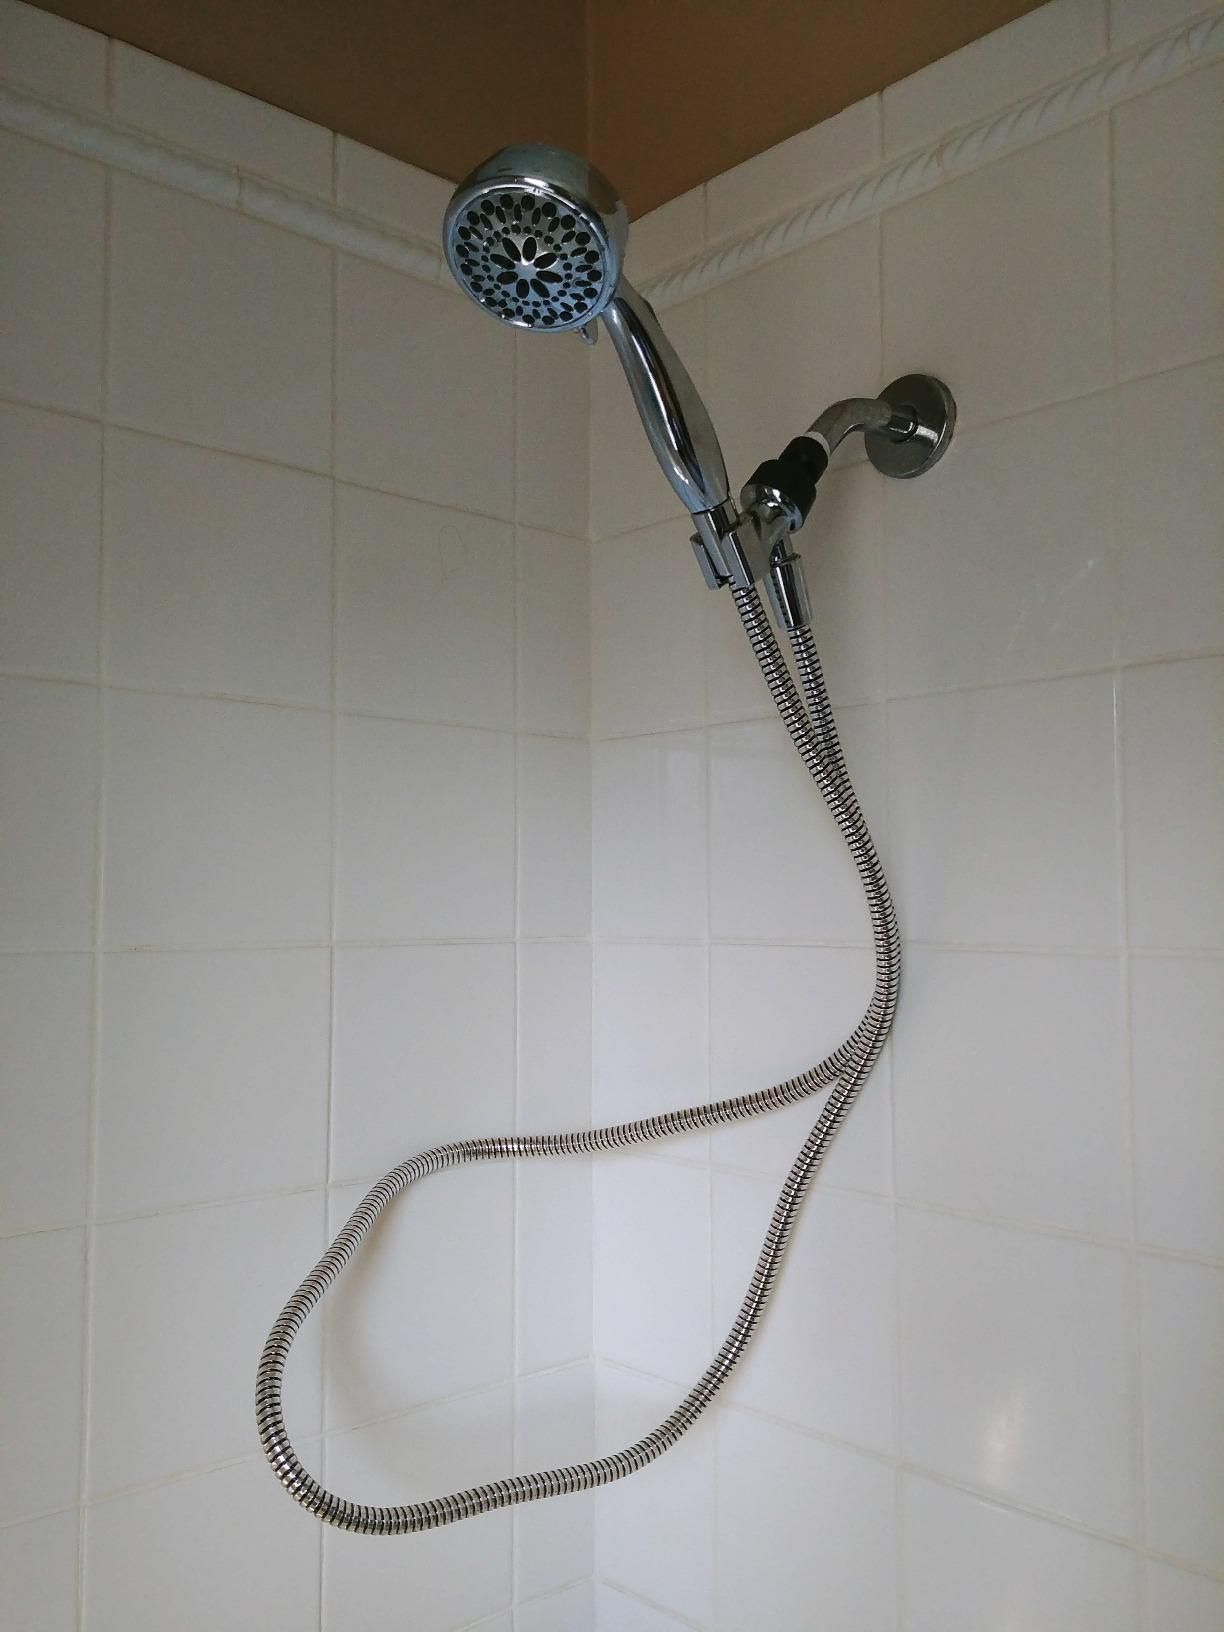 Best Handheld Shower Head Reviews In 2020 Shower Head Reviews